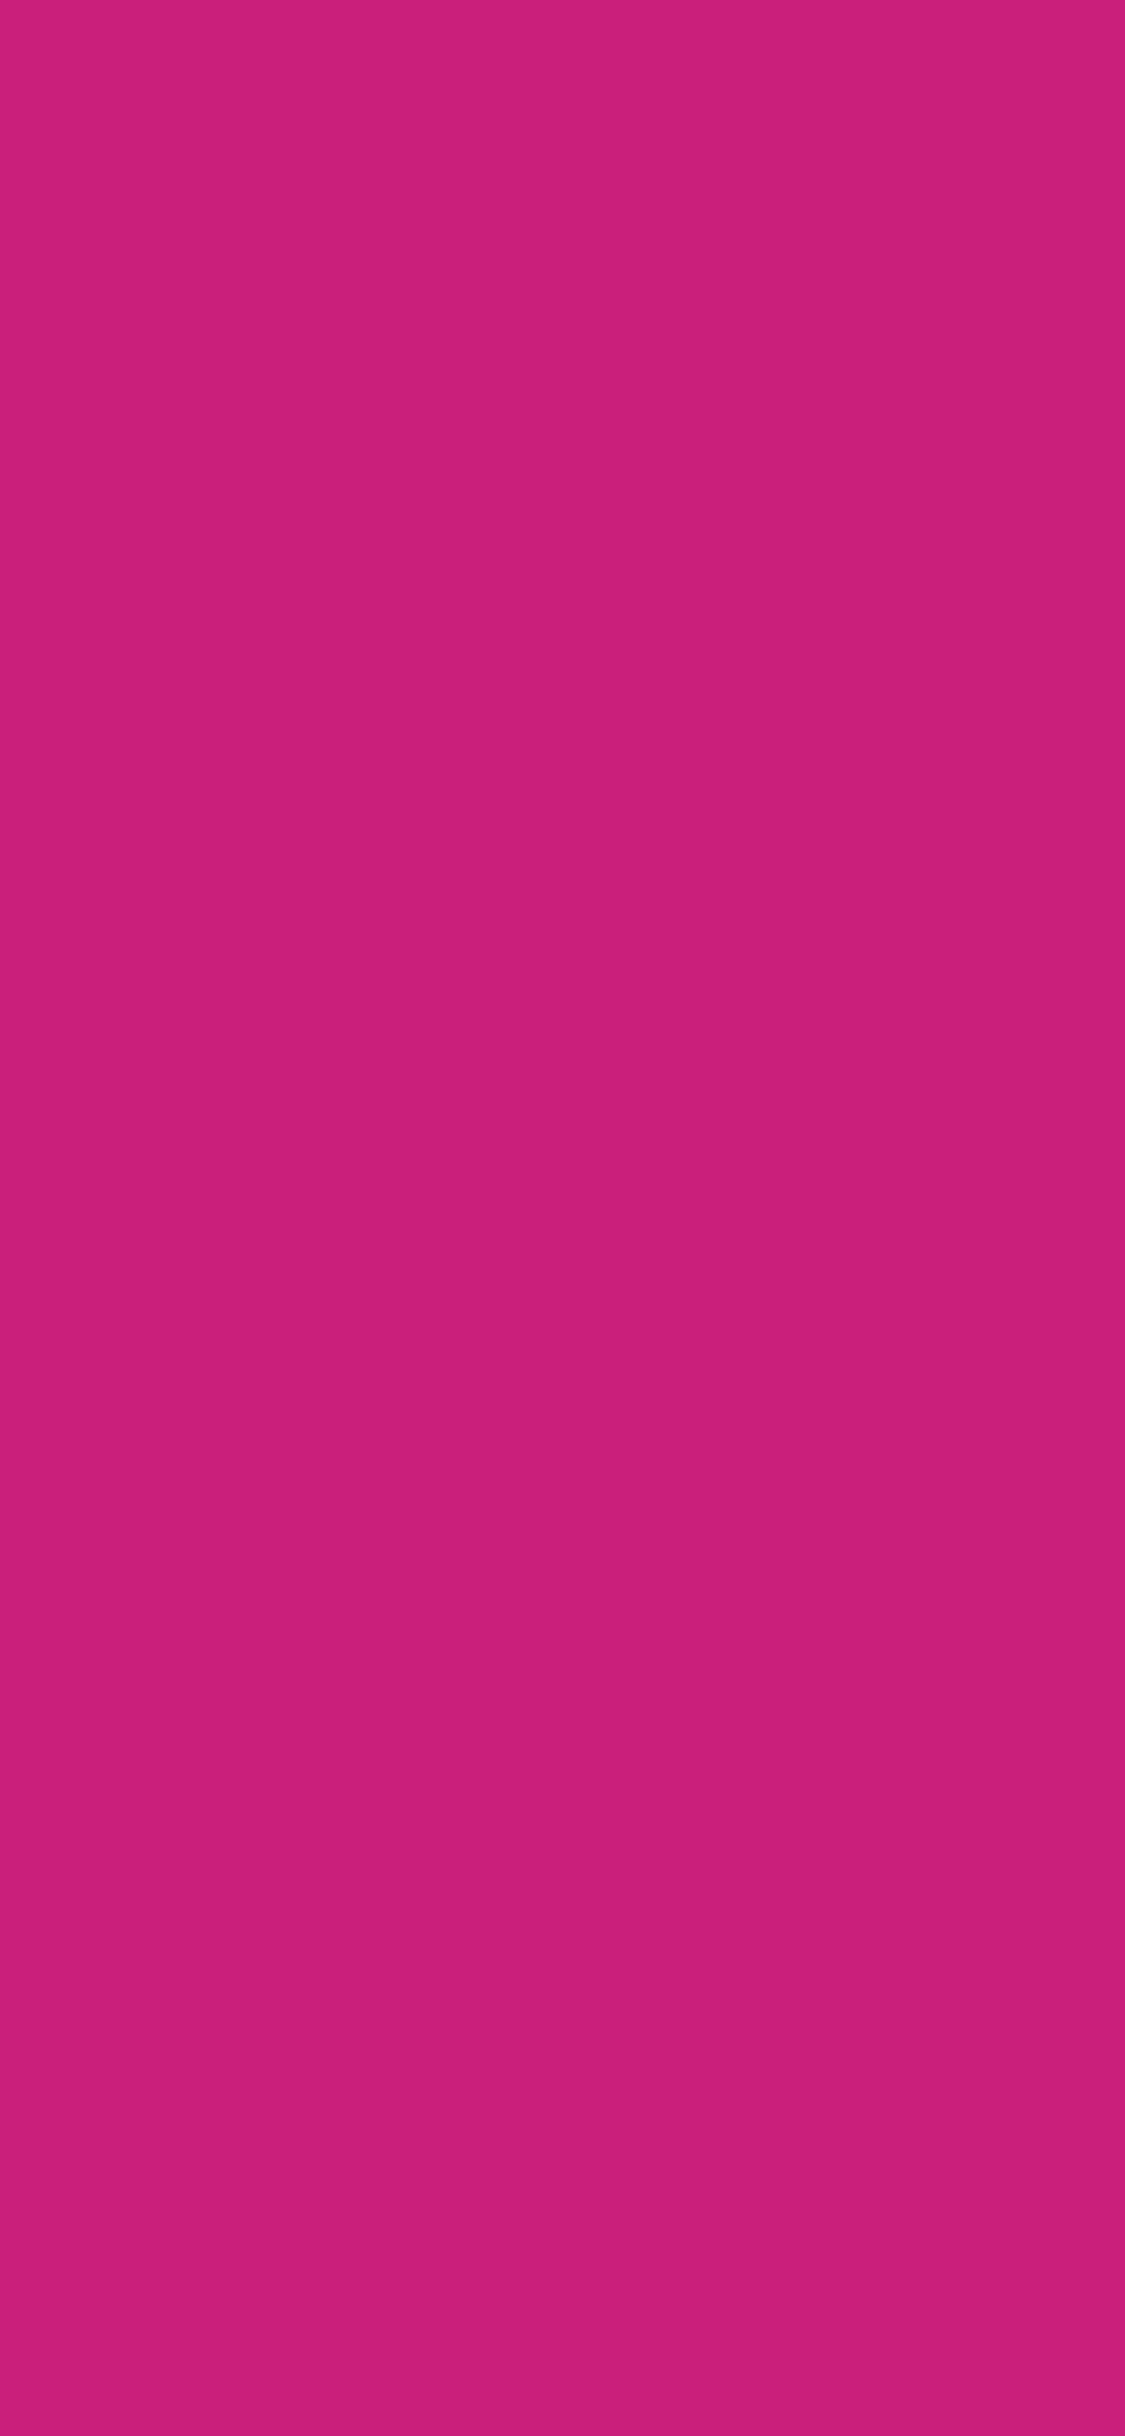 1125x2436 Magenta Dye Solid Color Background